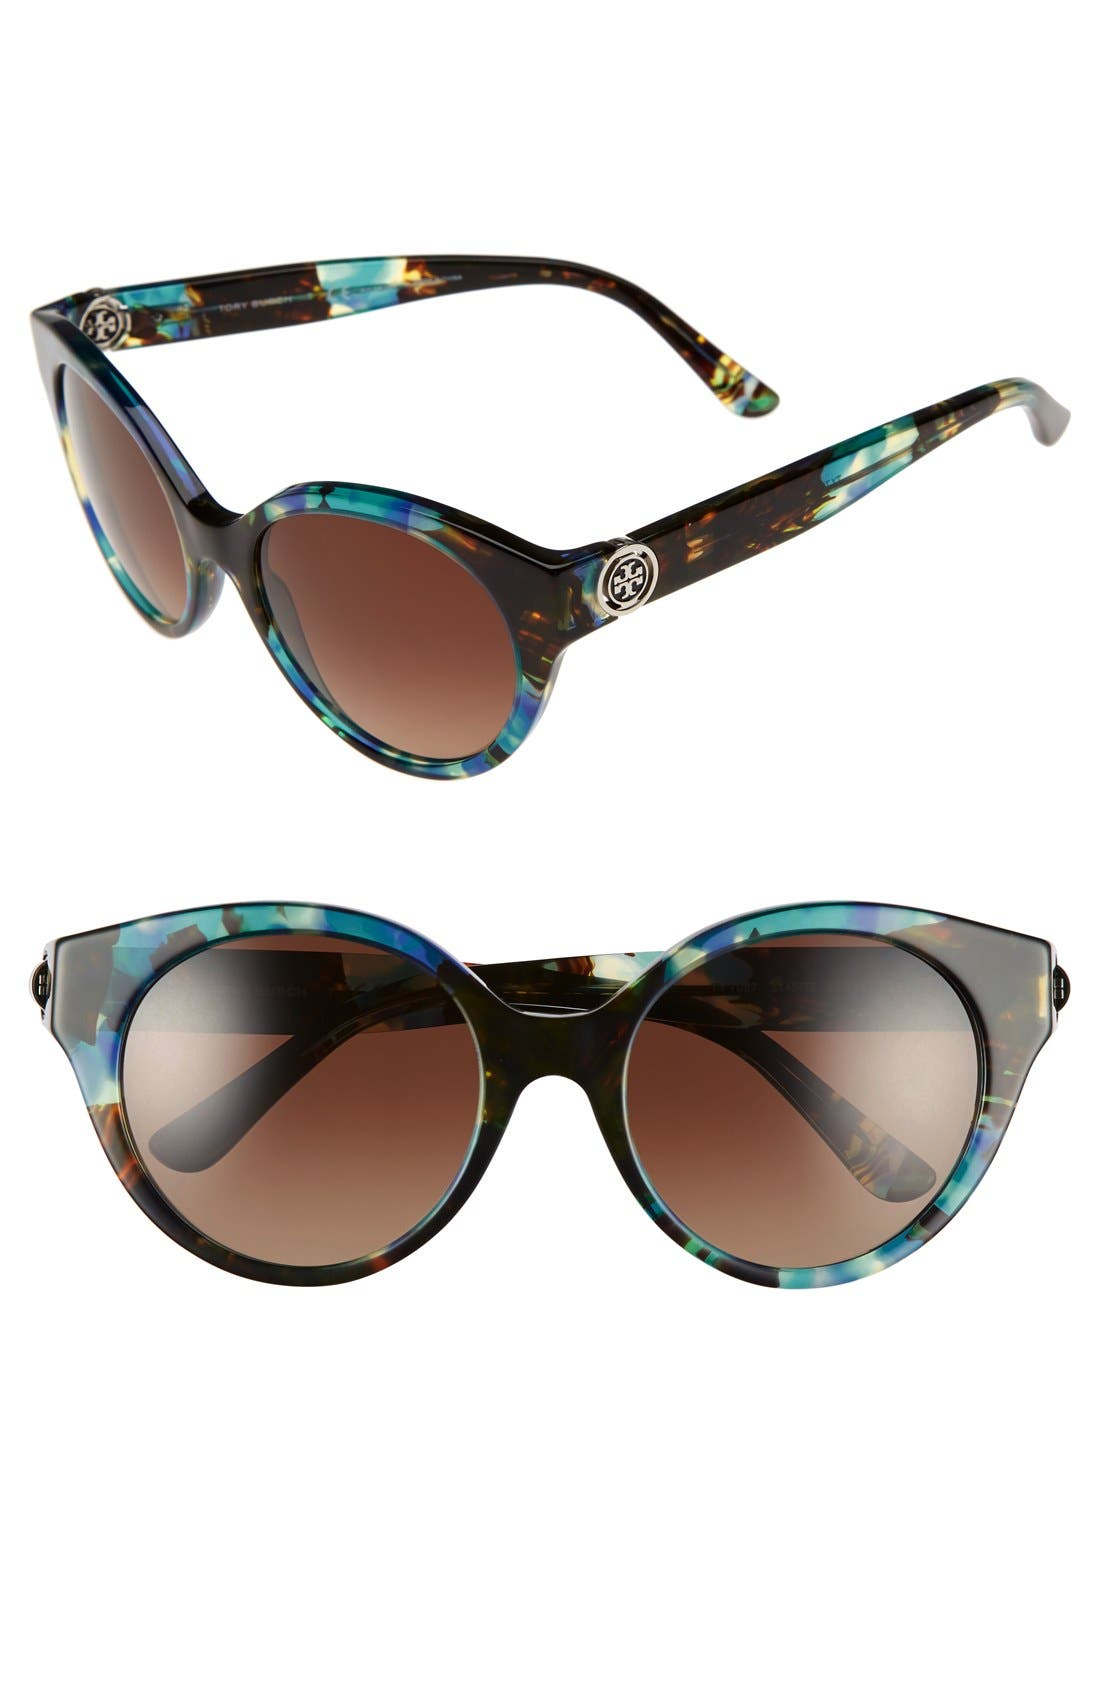 Main Image - Tory Burch 52mm Polarized Cat Eye Sunglasses